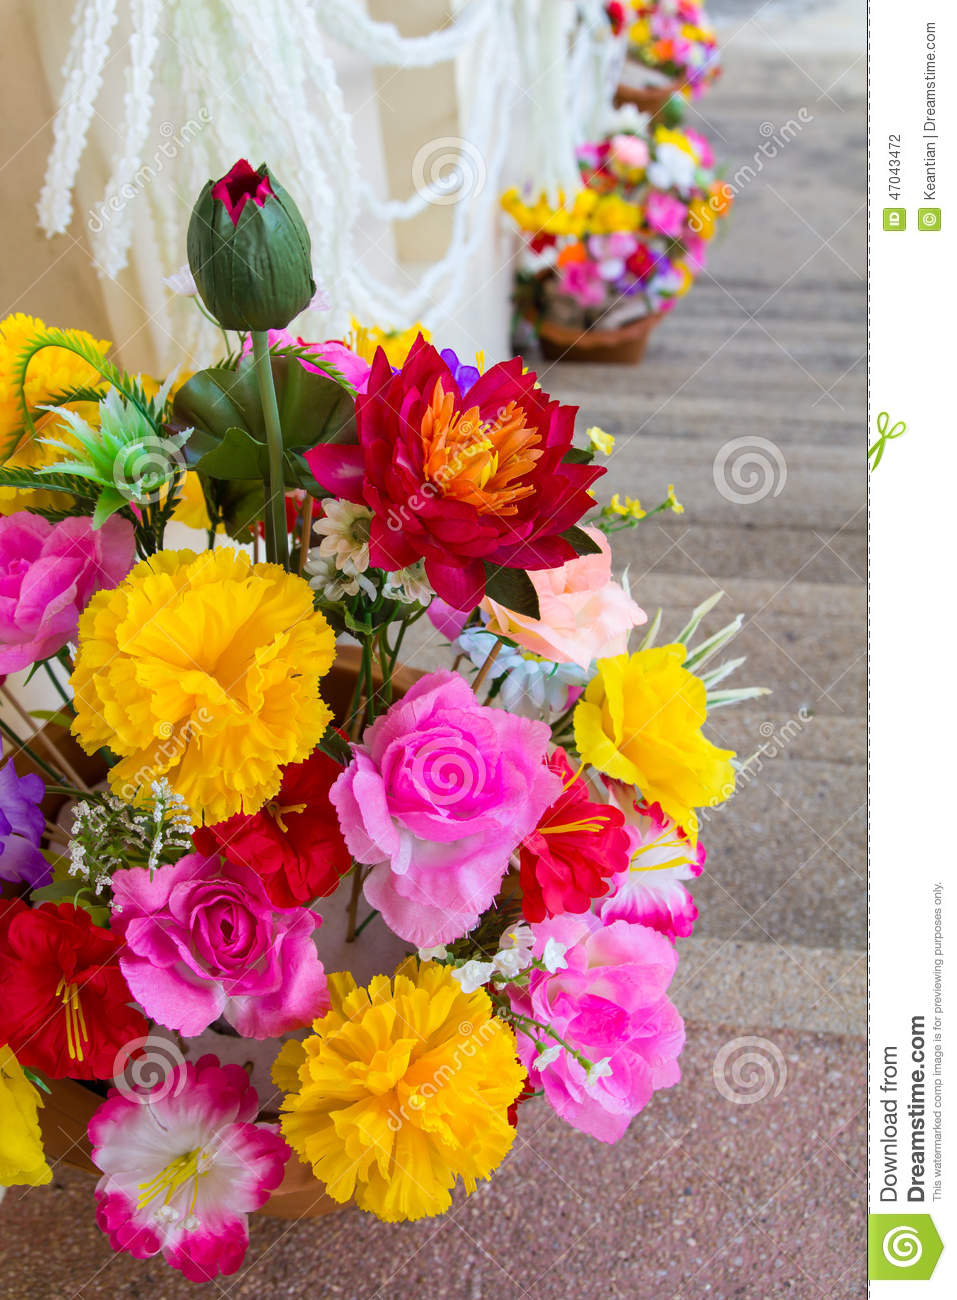 Artificial fake flowers stock photo image of floral 47043472 artificial fake flowers izmirmasajfo